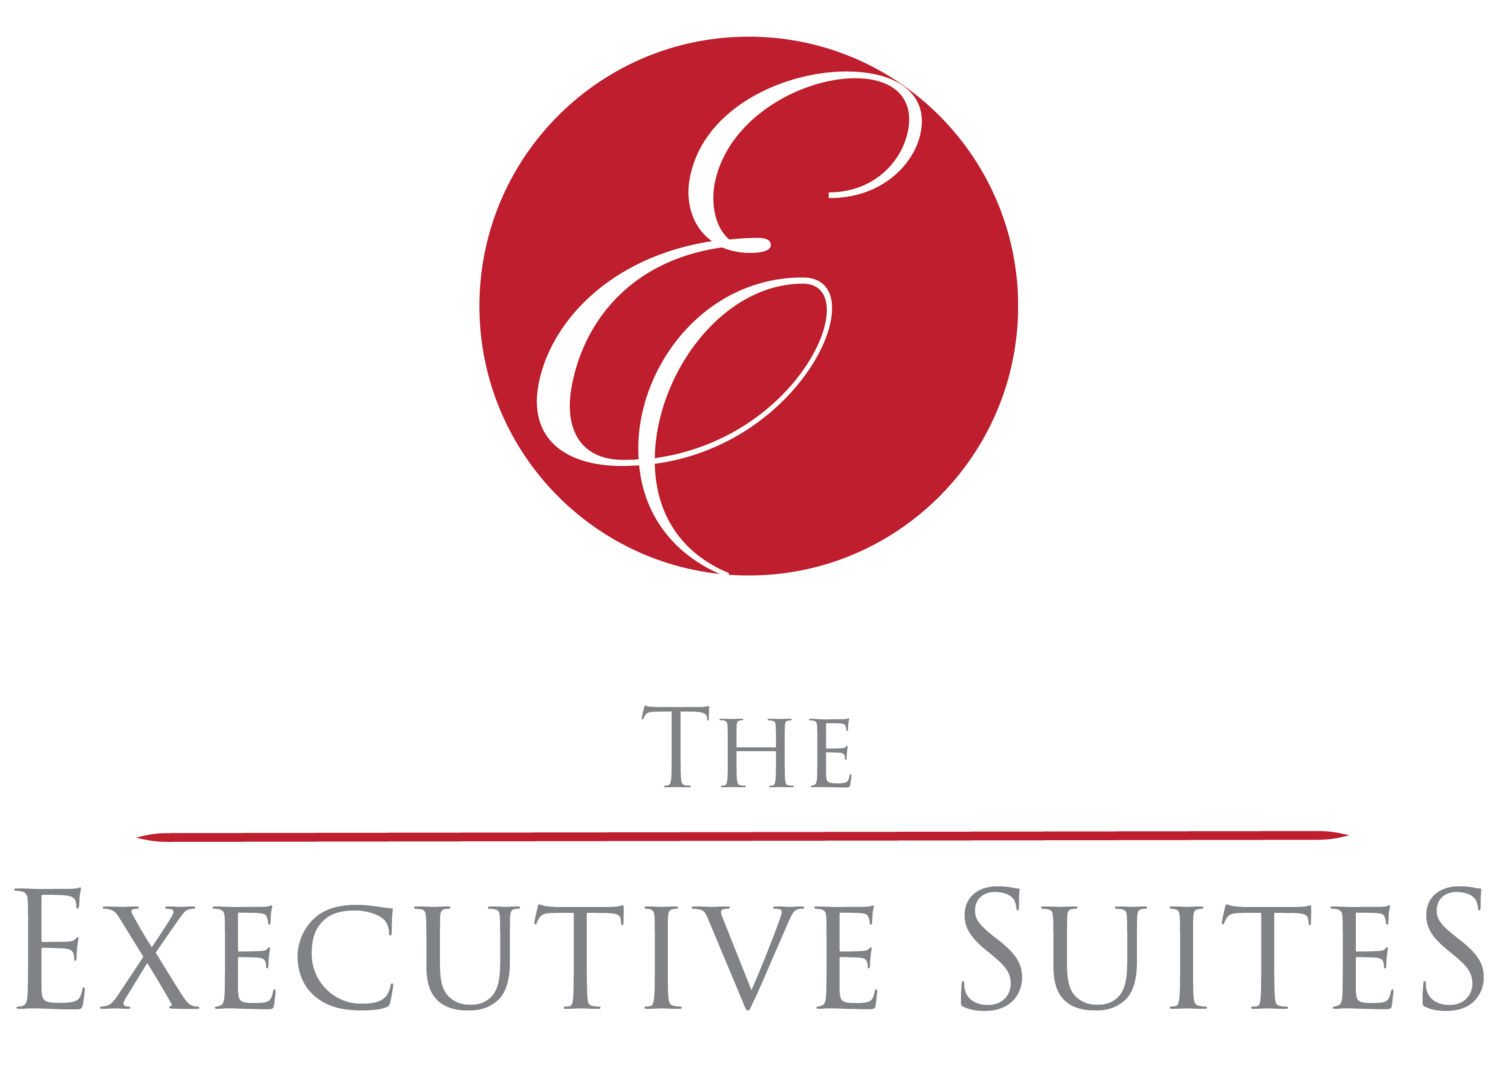 The Executive Suites